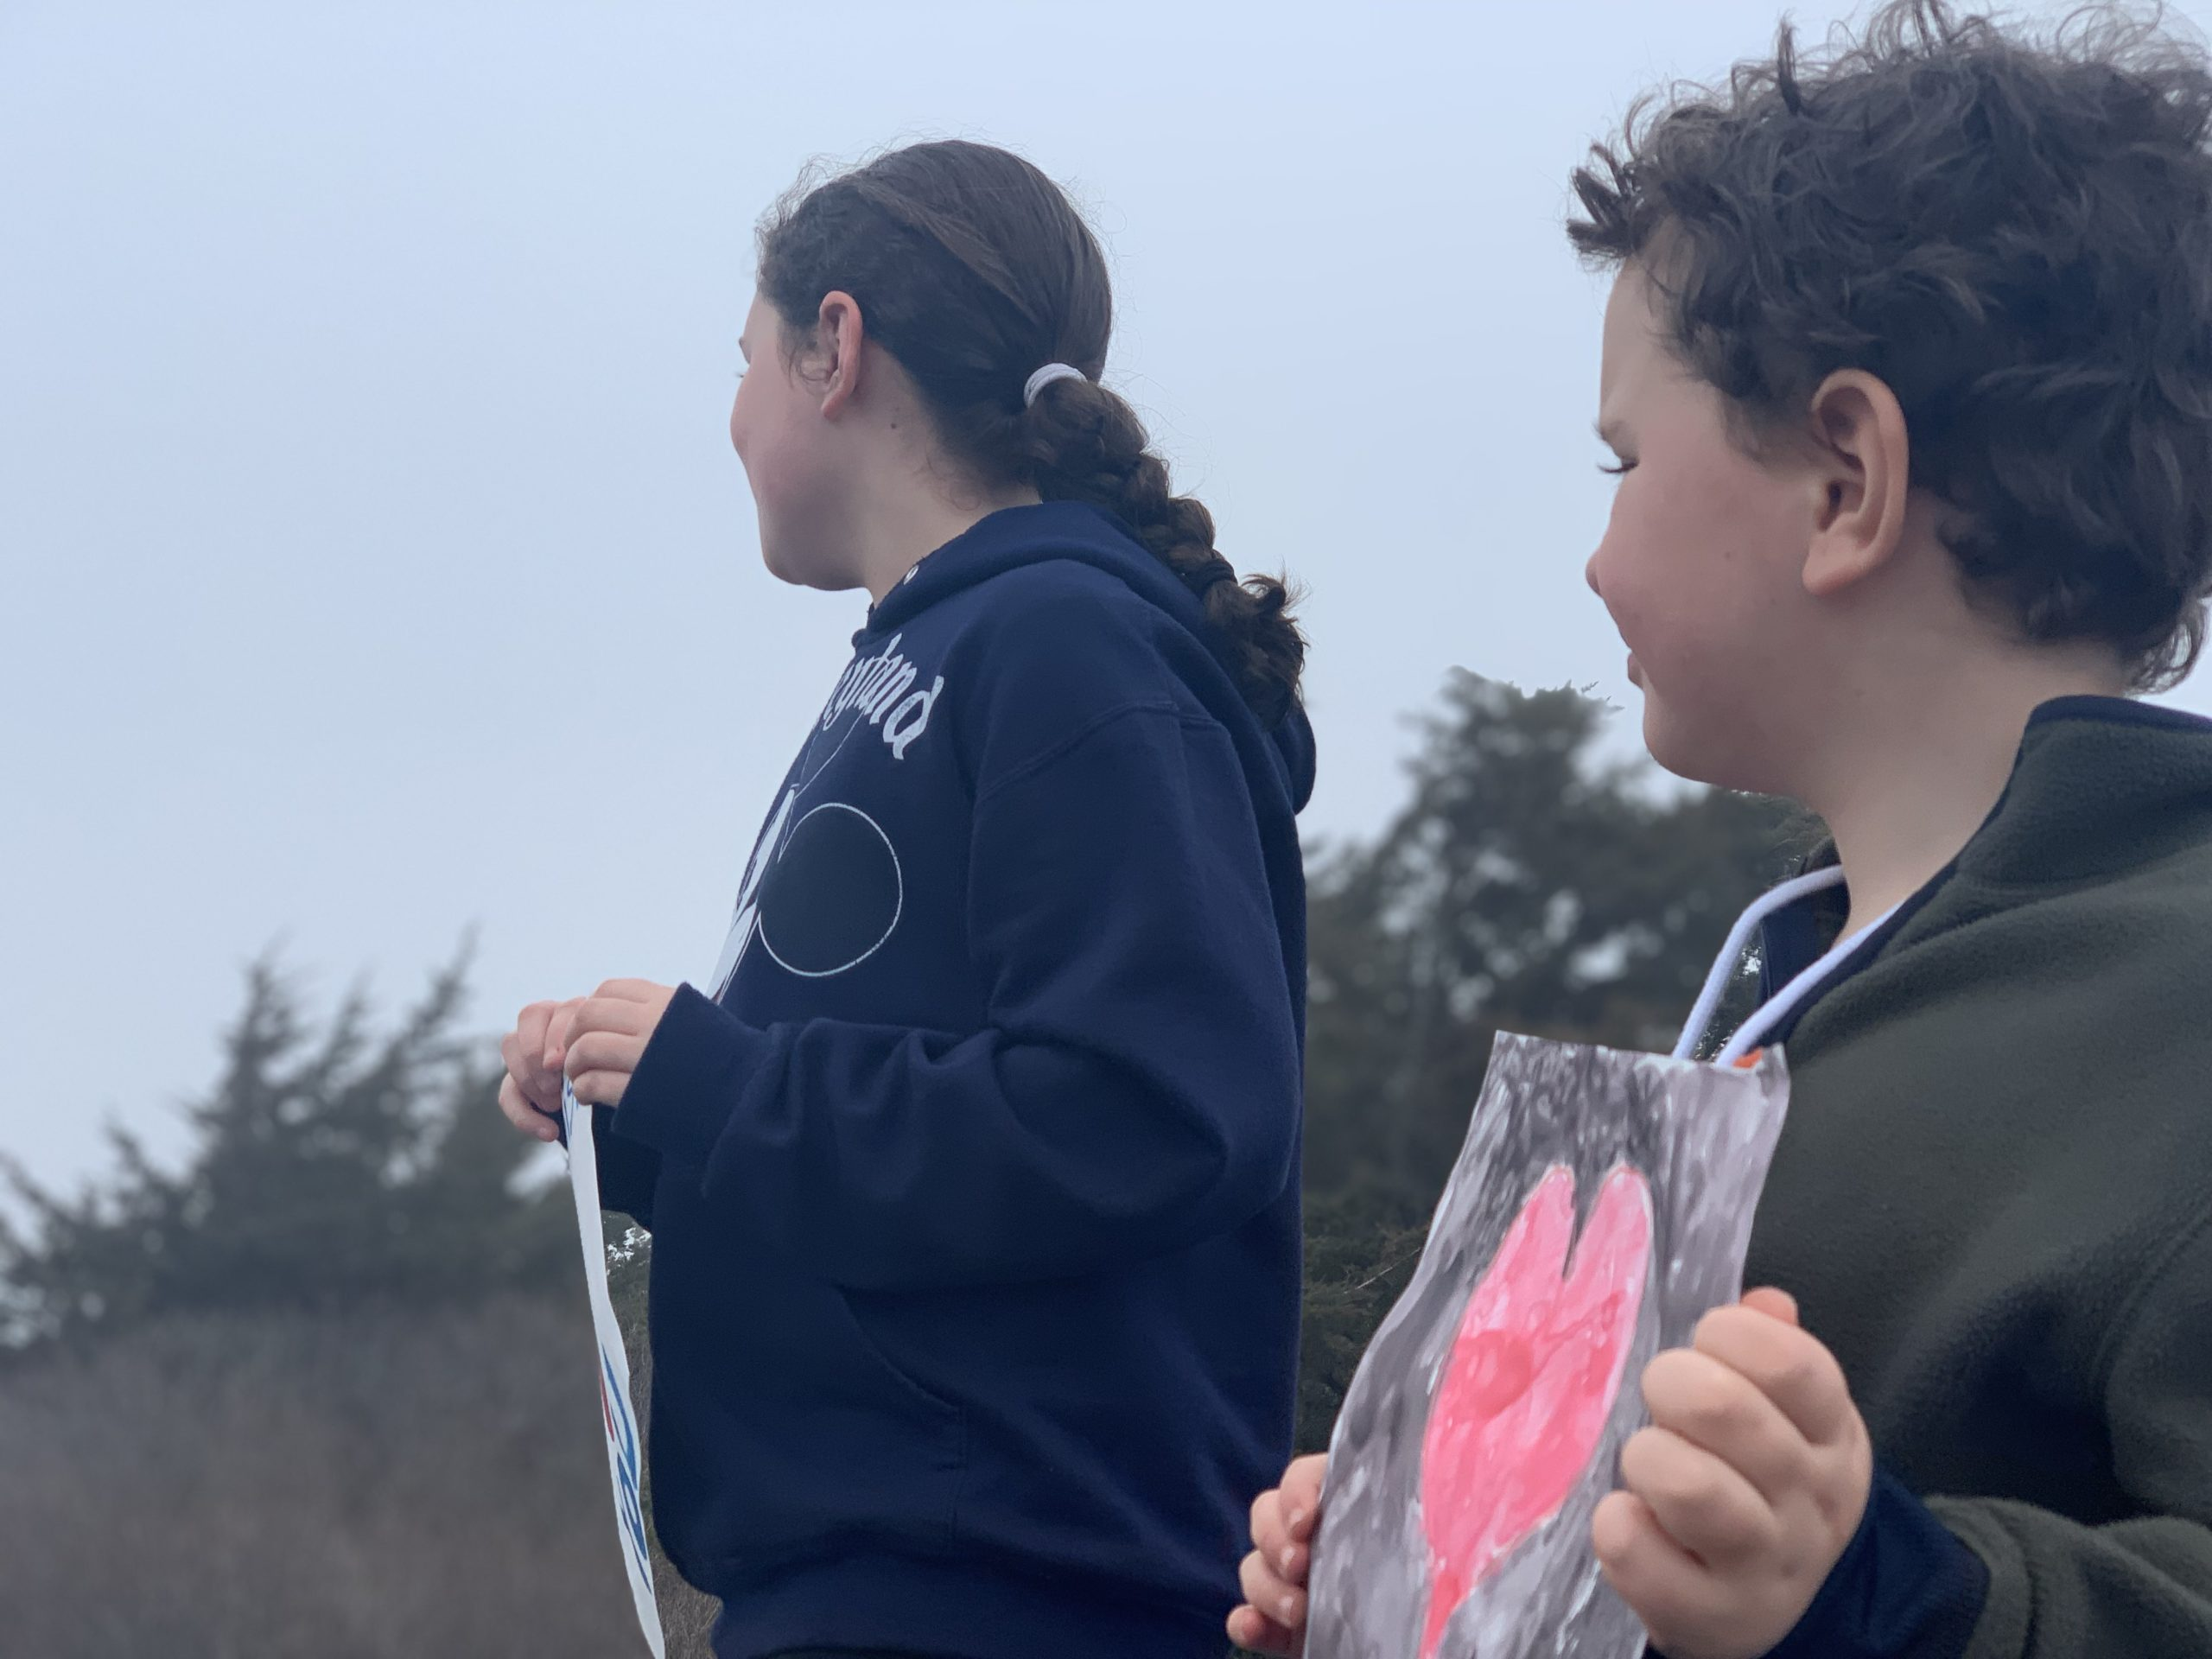 Students waved to their teachers on Friday during a Spirit Drive in Springs held shortly before it was announced by Governor Andrew Cuomo that school would be closed for the remainder of the year.